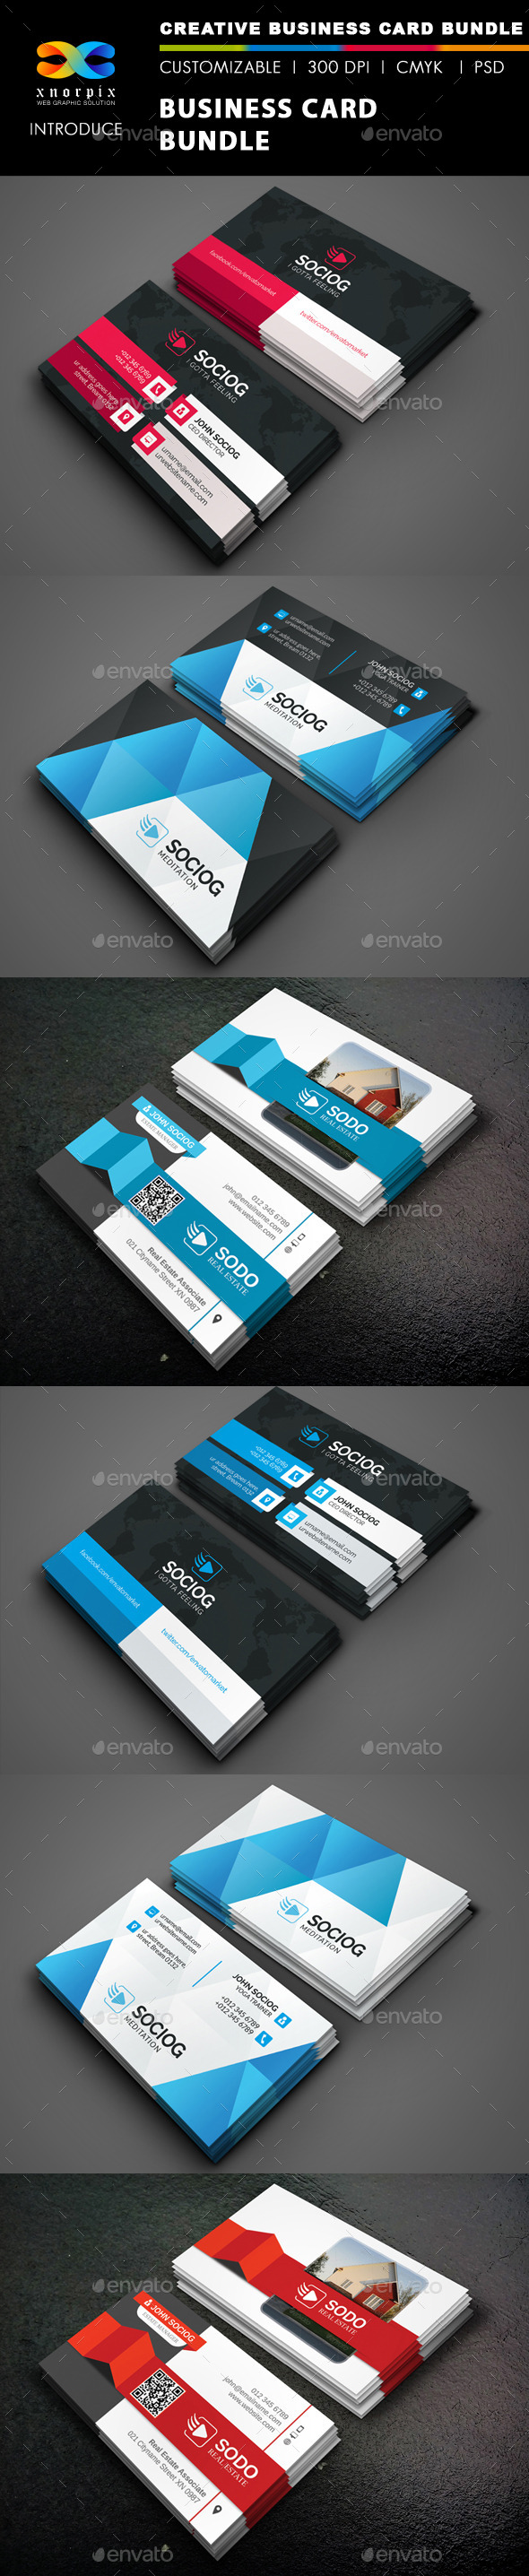 Business Card Bundle 3 in 1-Vol 43 - Corporate Business Cards